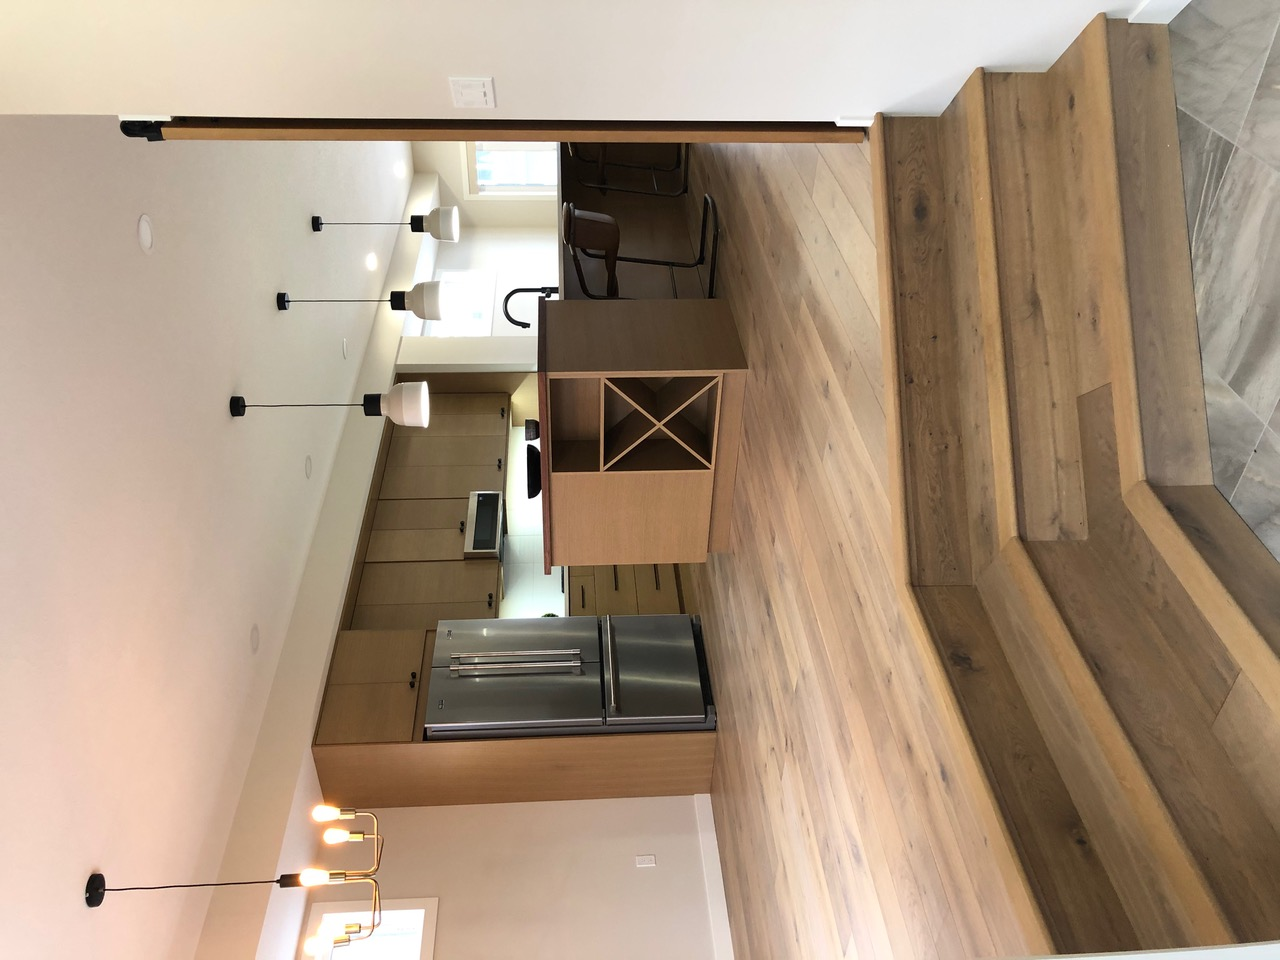 View of kitchen wooden flooring